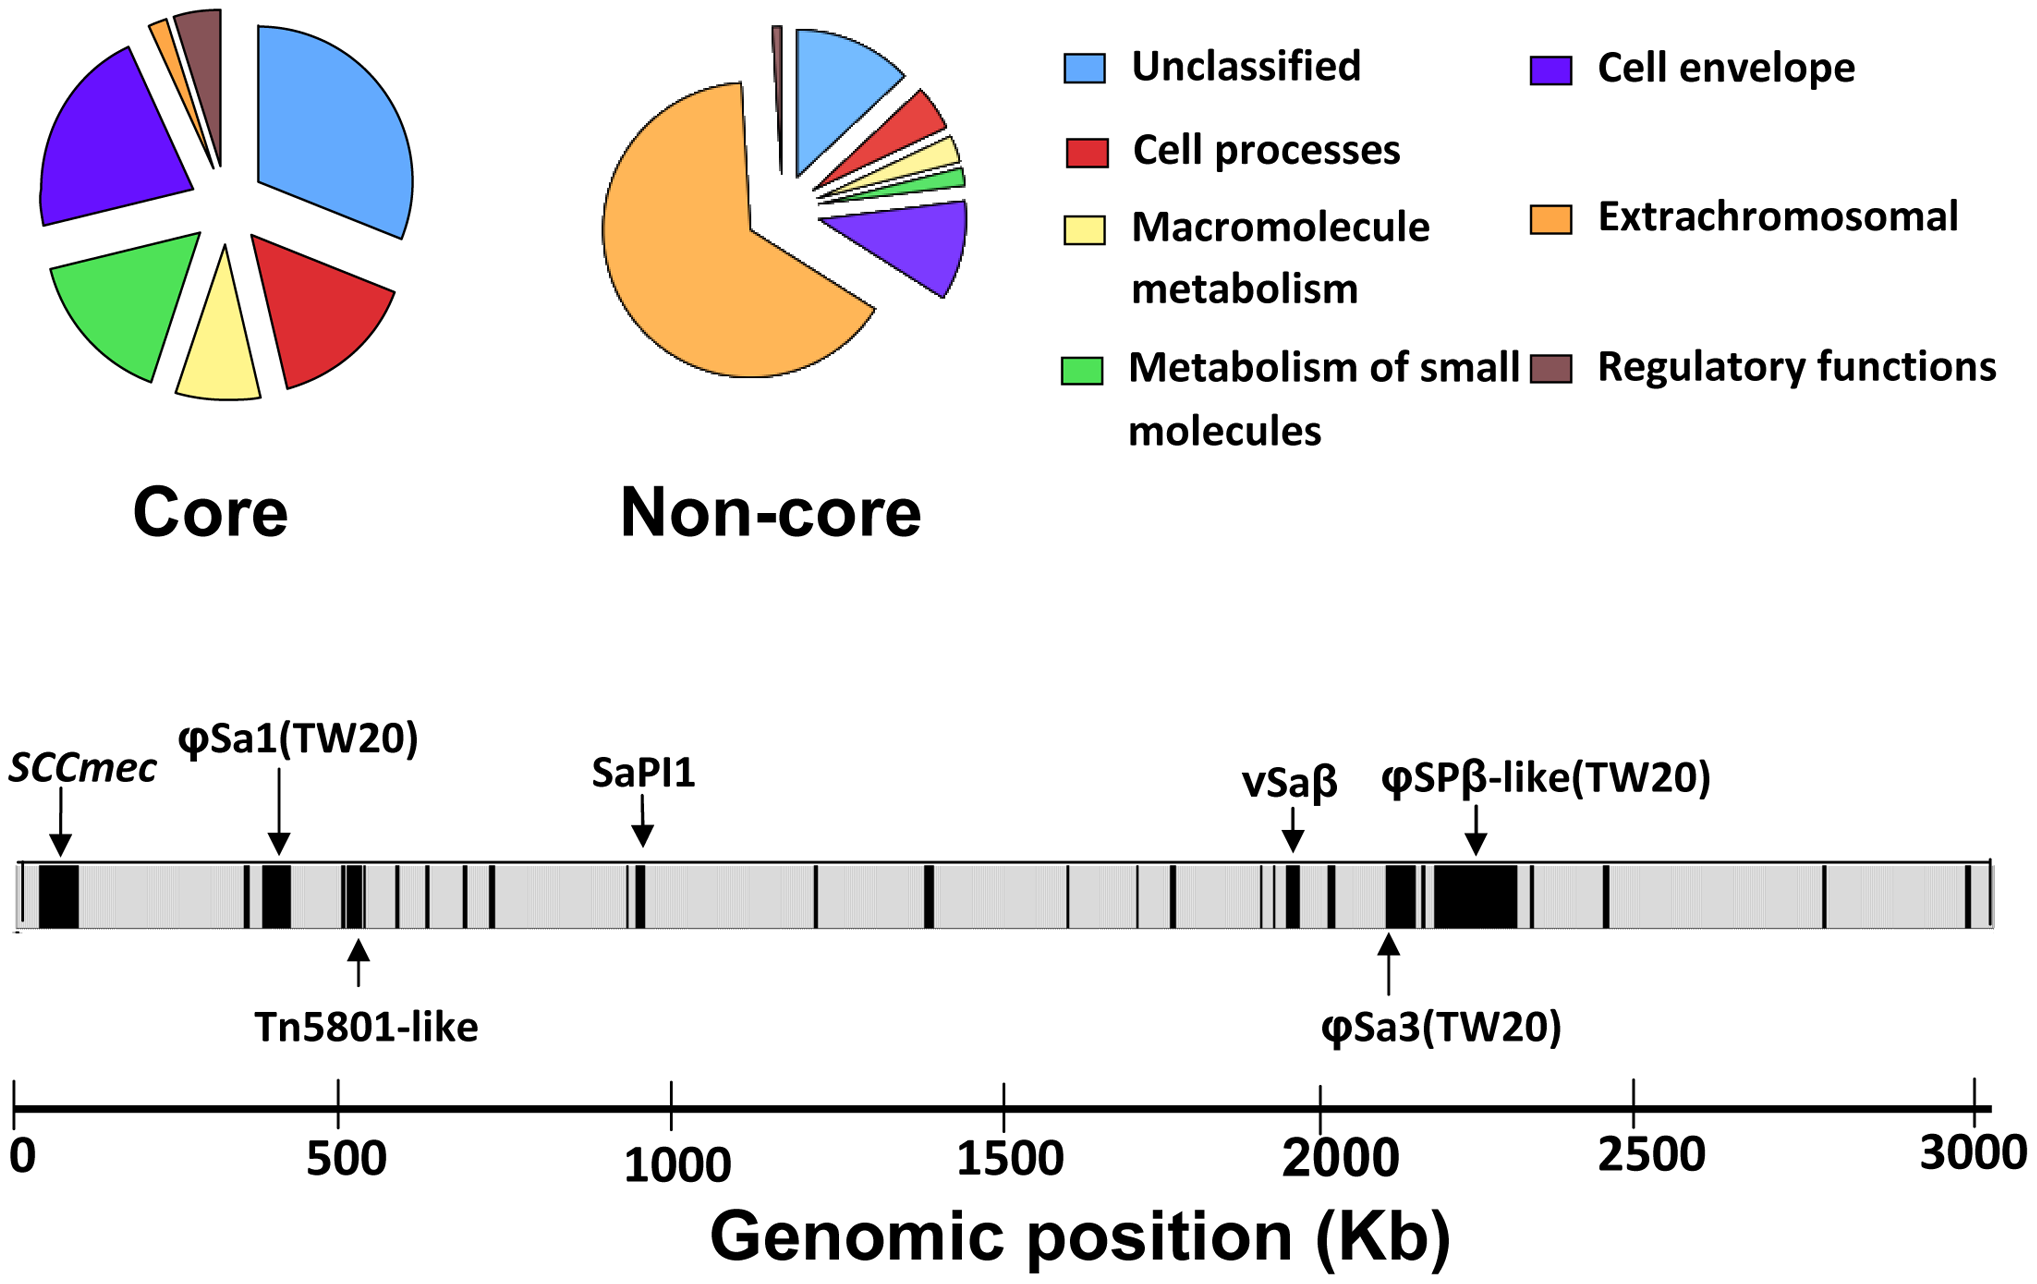 Functional classification of genes assigned to core and non-core regions based on an adapted version of Riley's classification.